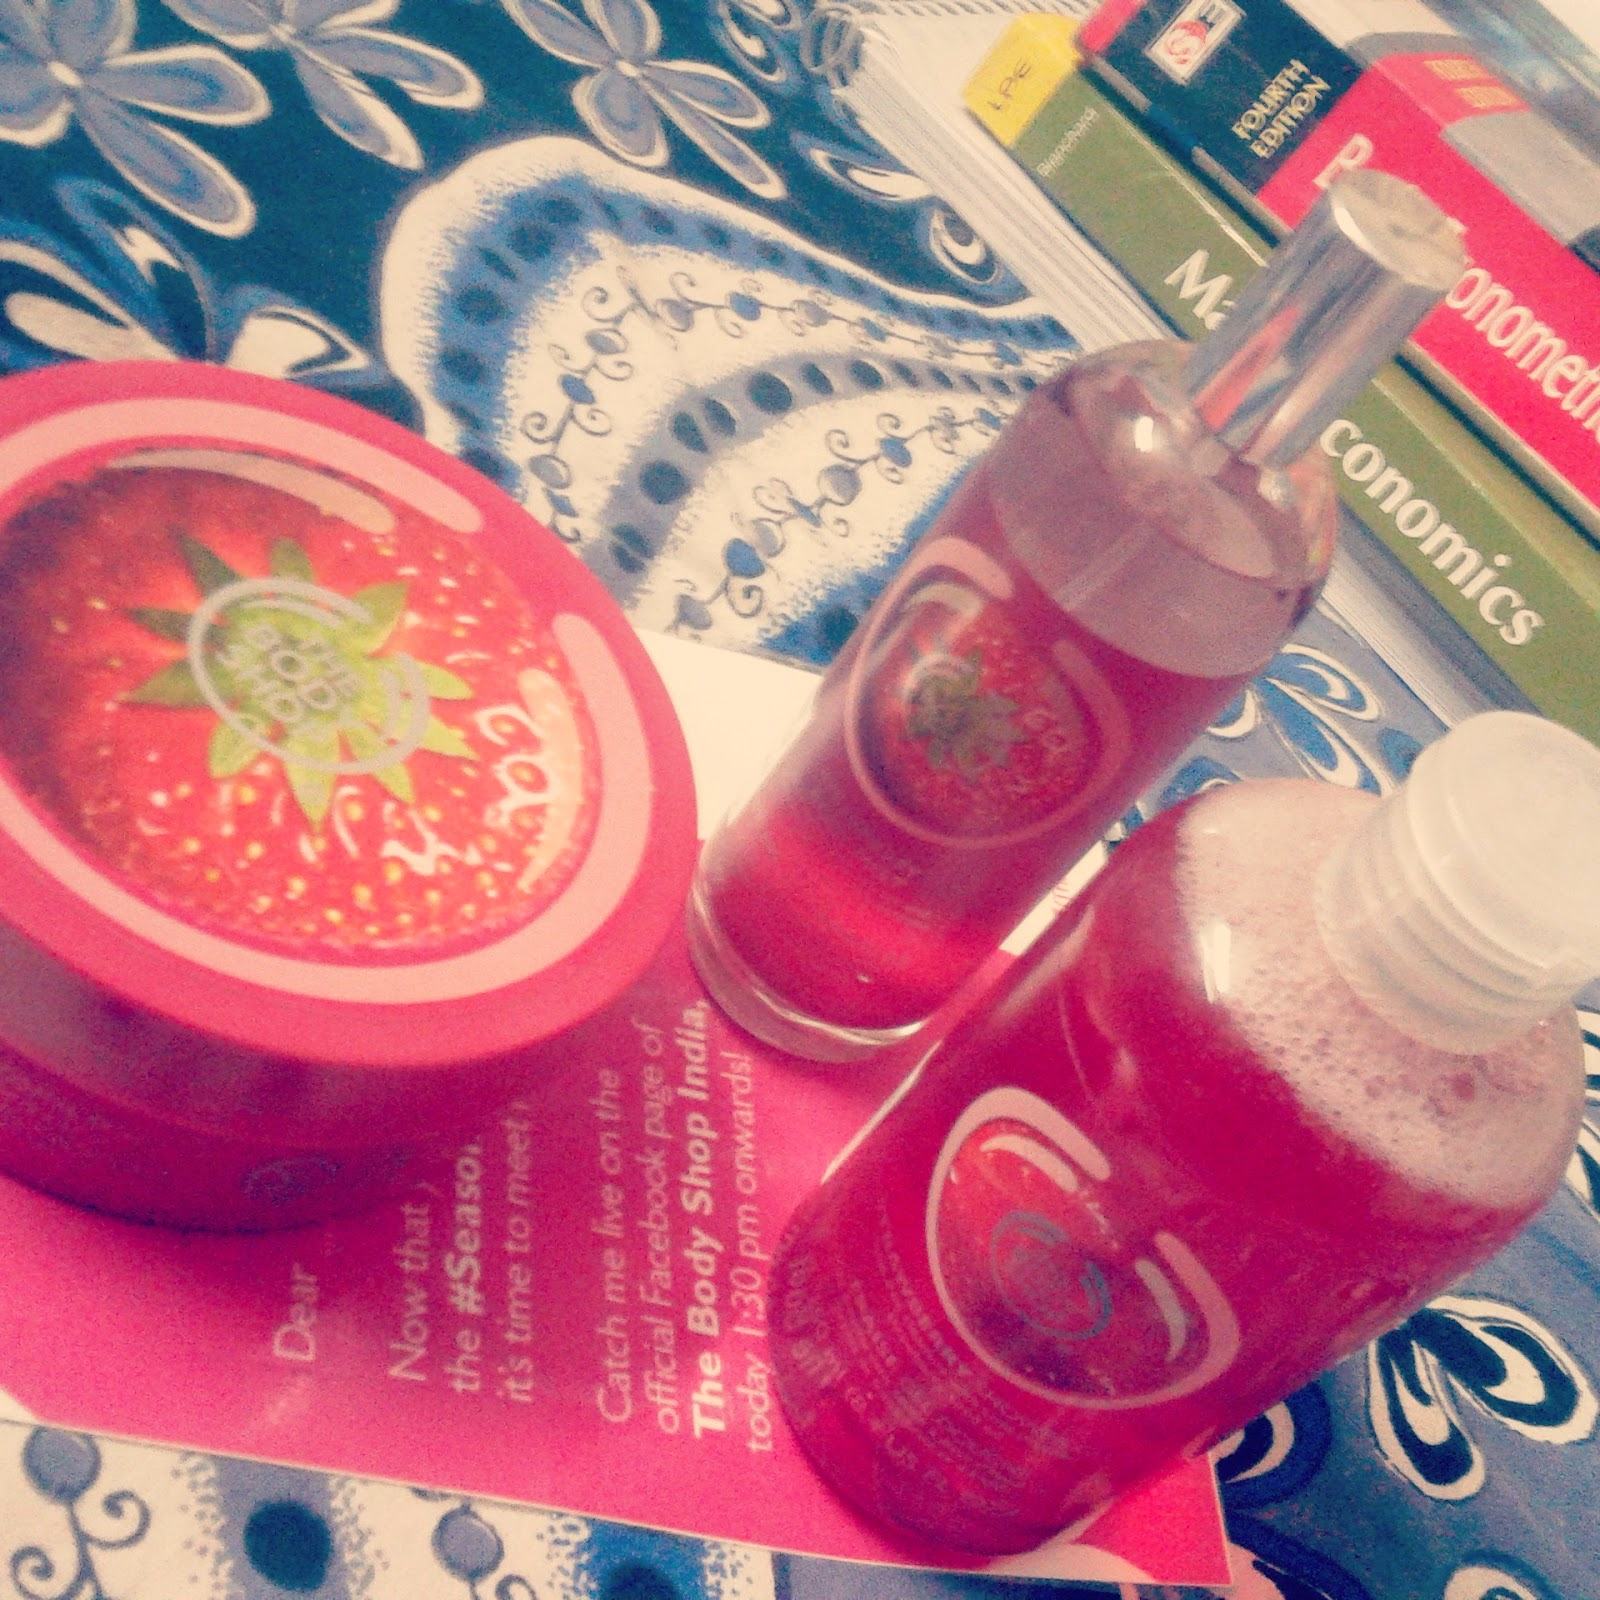 Product Review | The Body Shop's #SeasonsMustHave